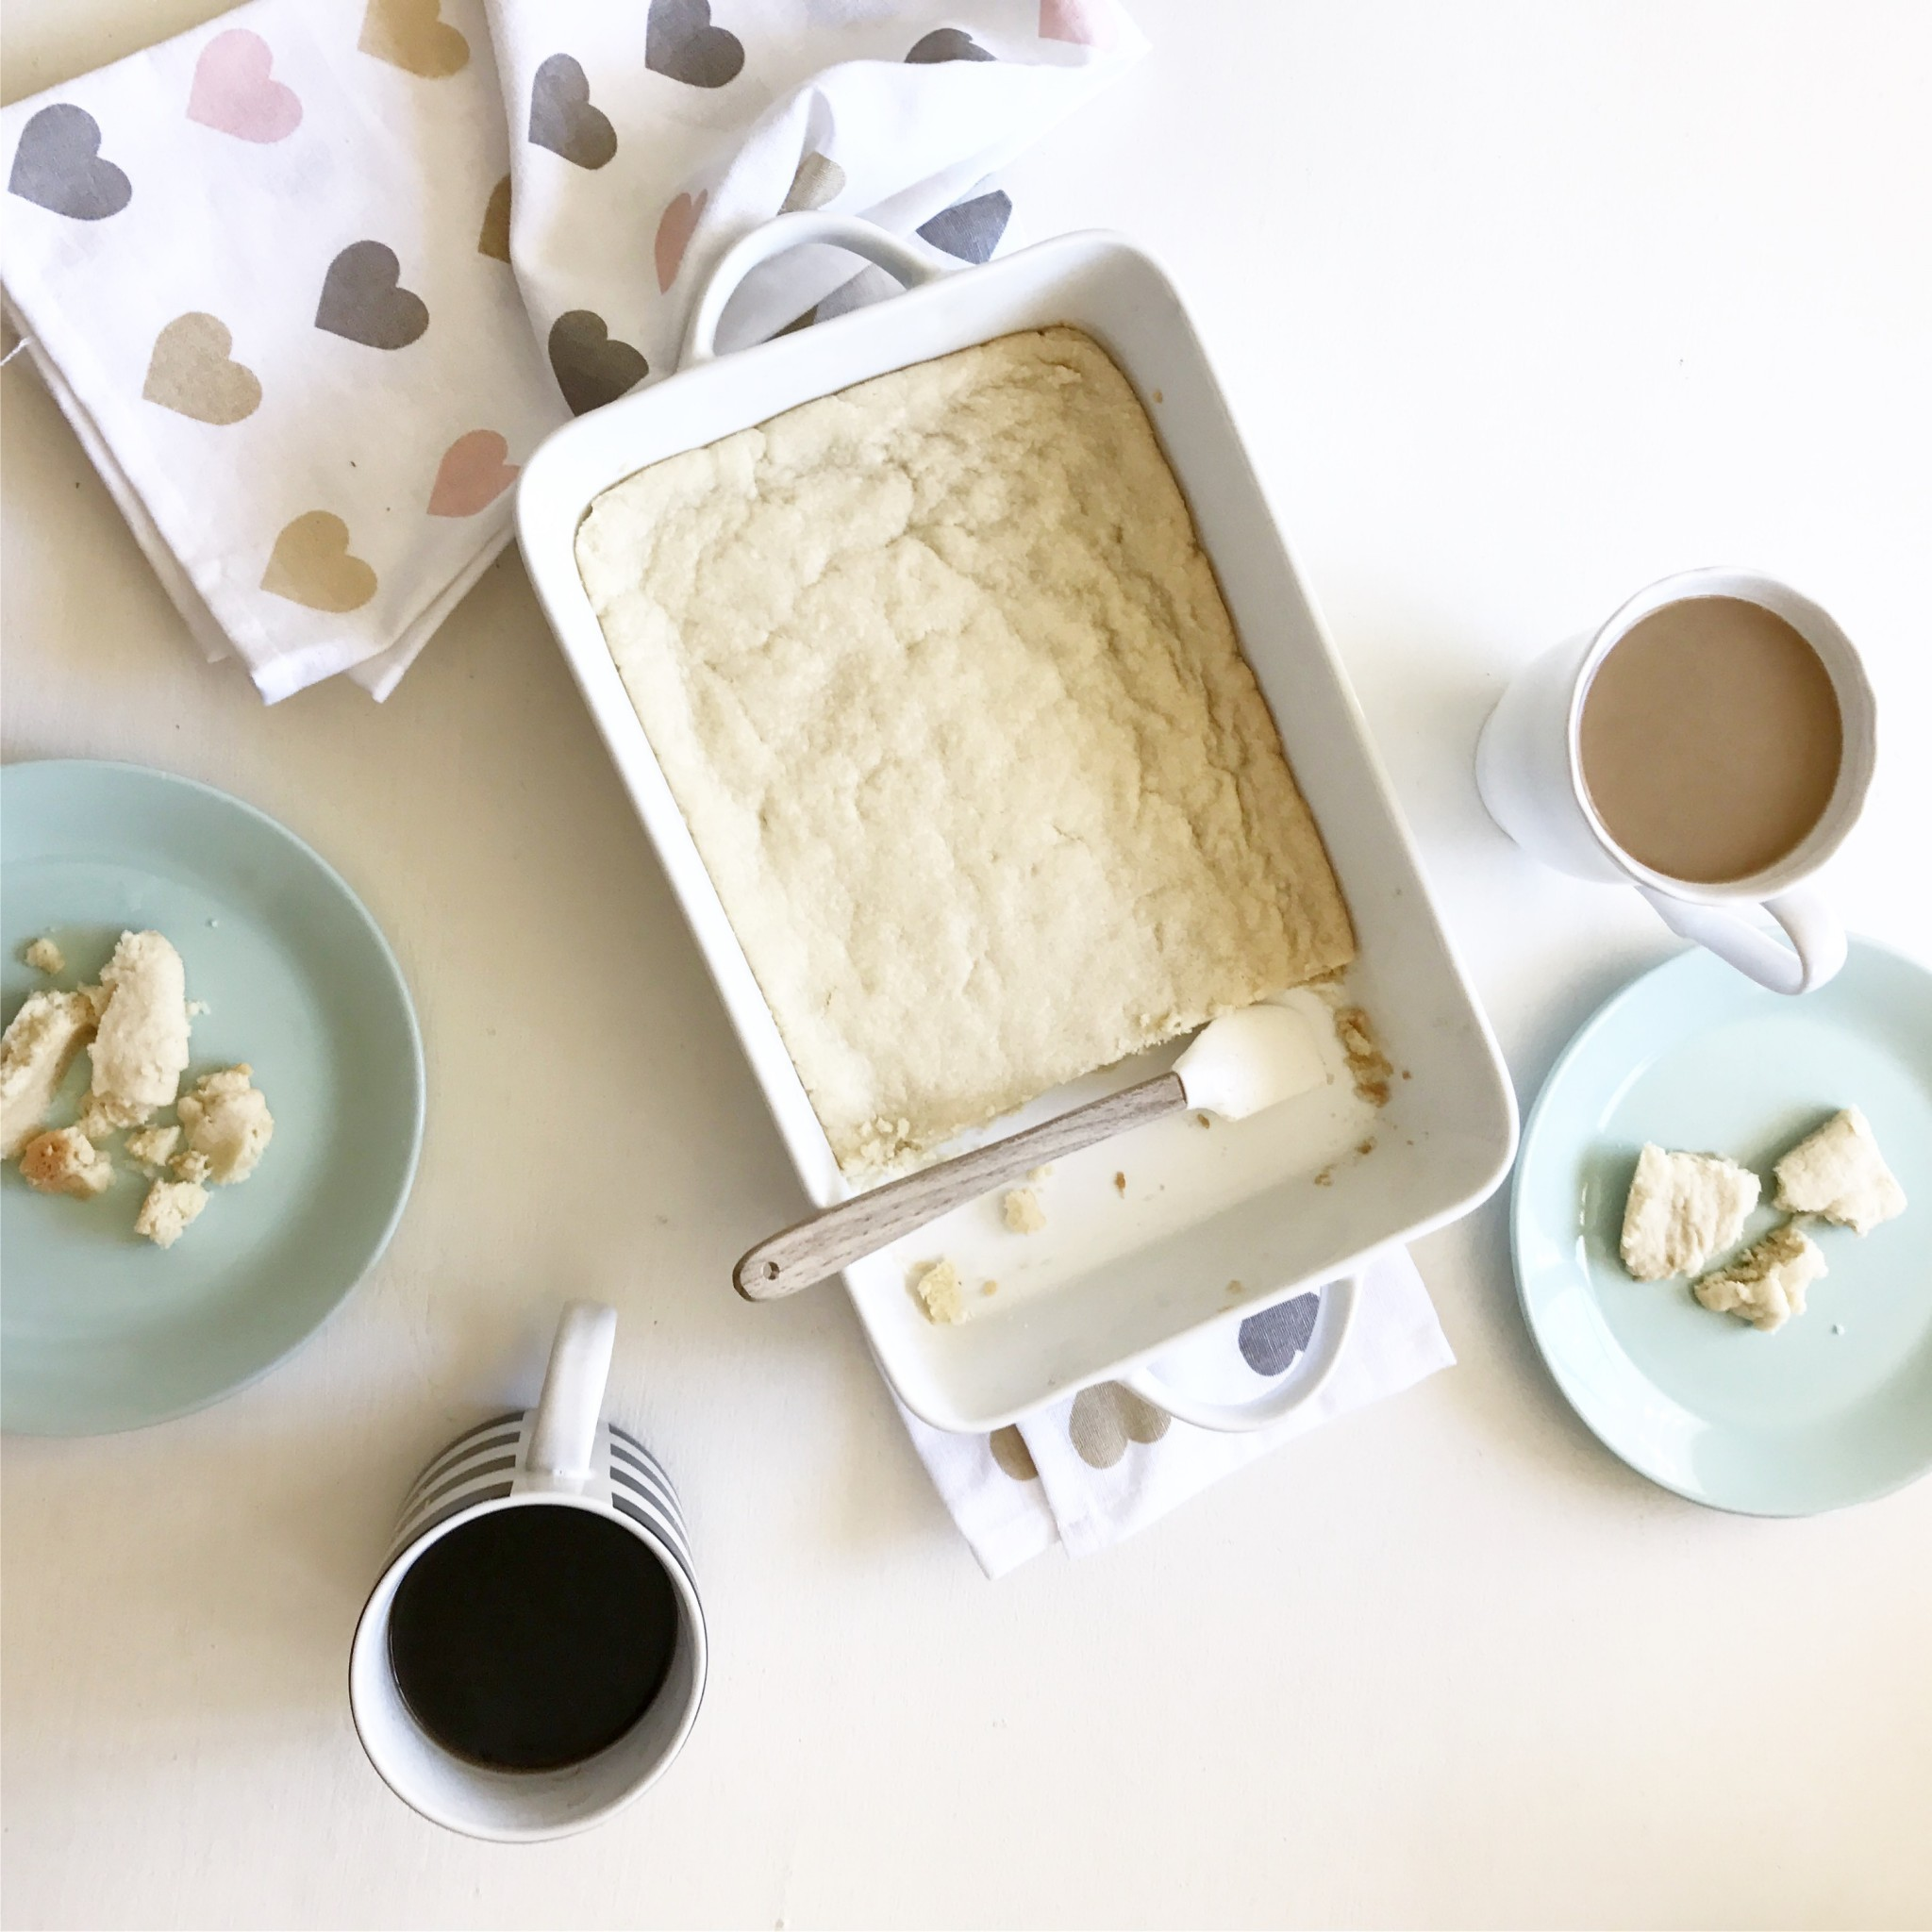 Homemade shortbread recipe in a white dish with coffee